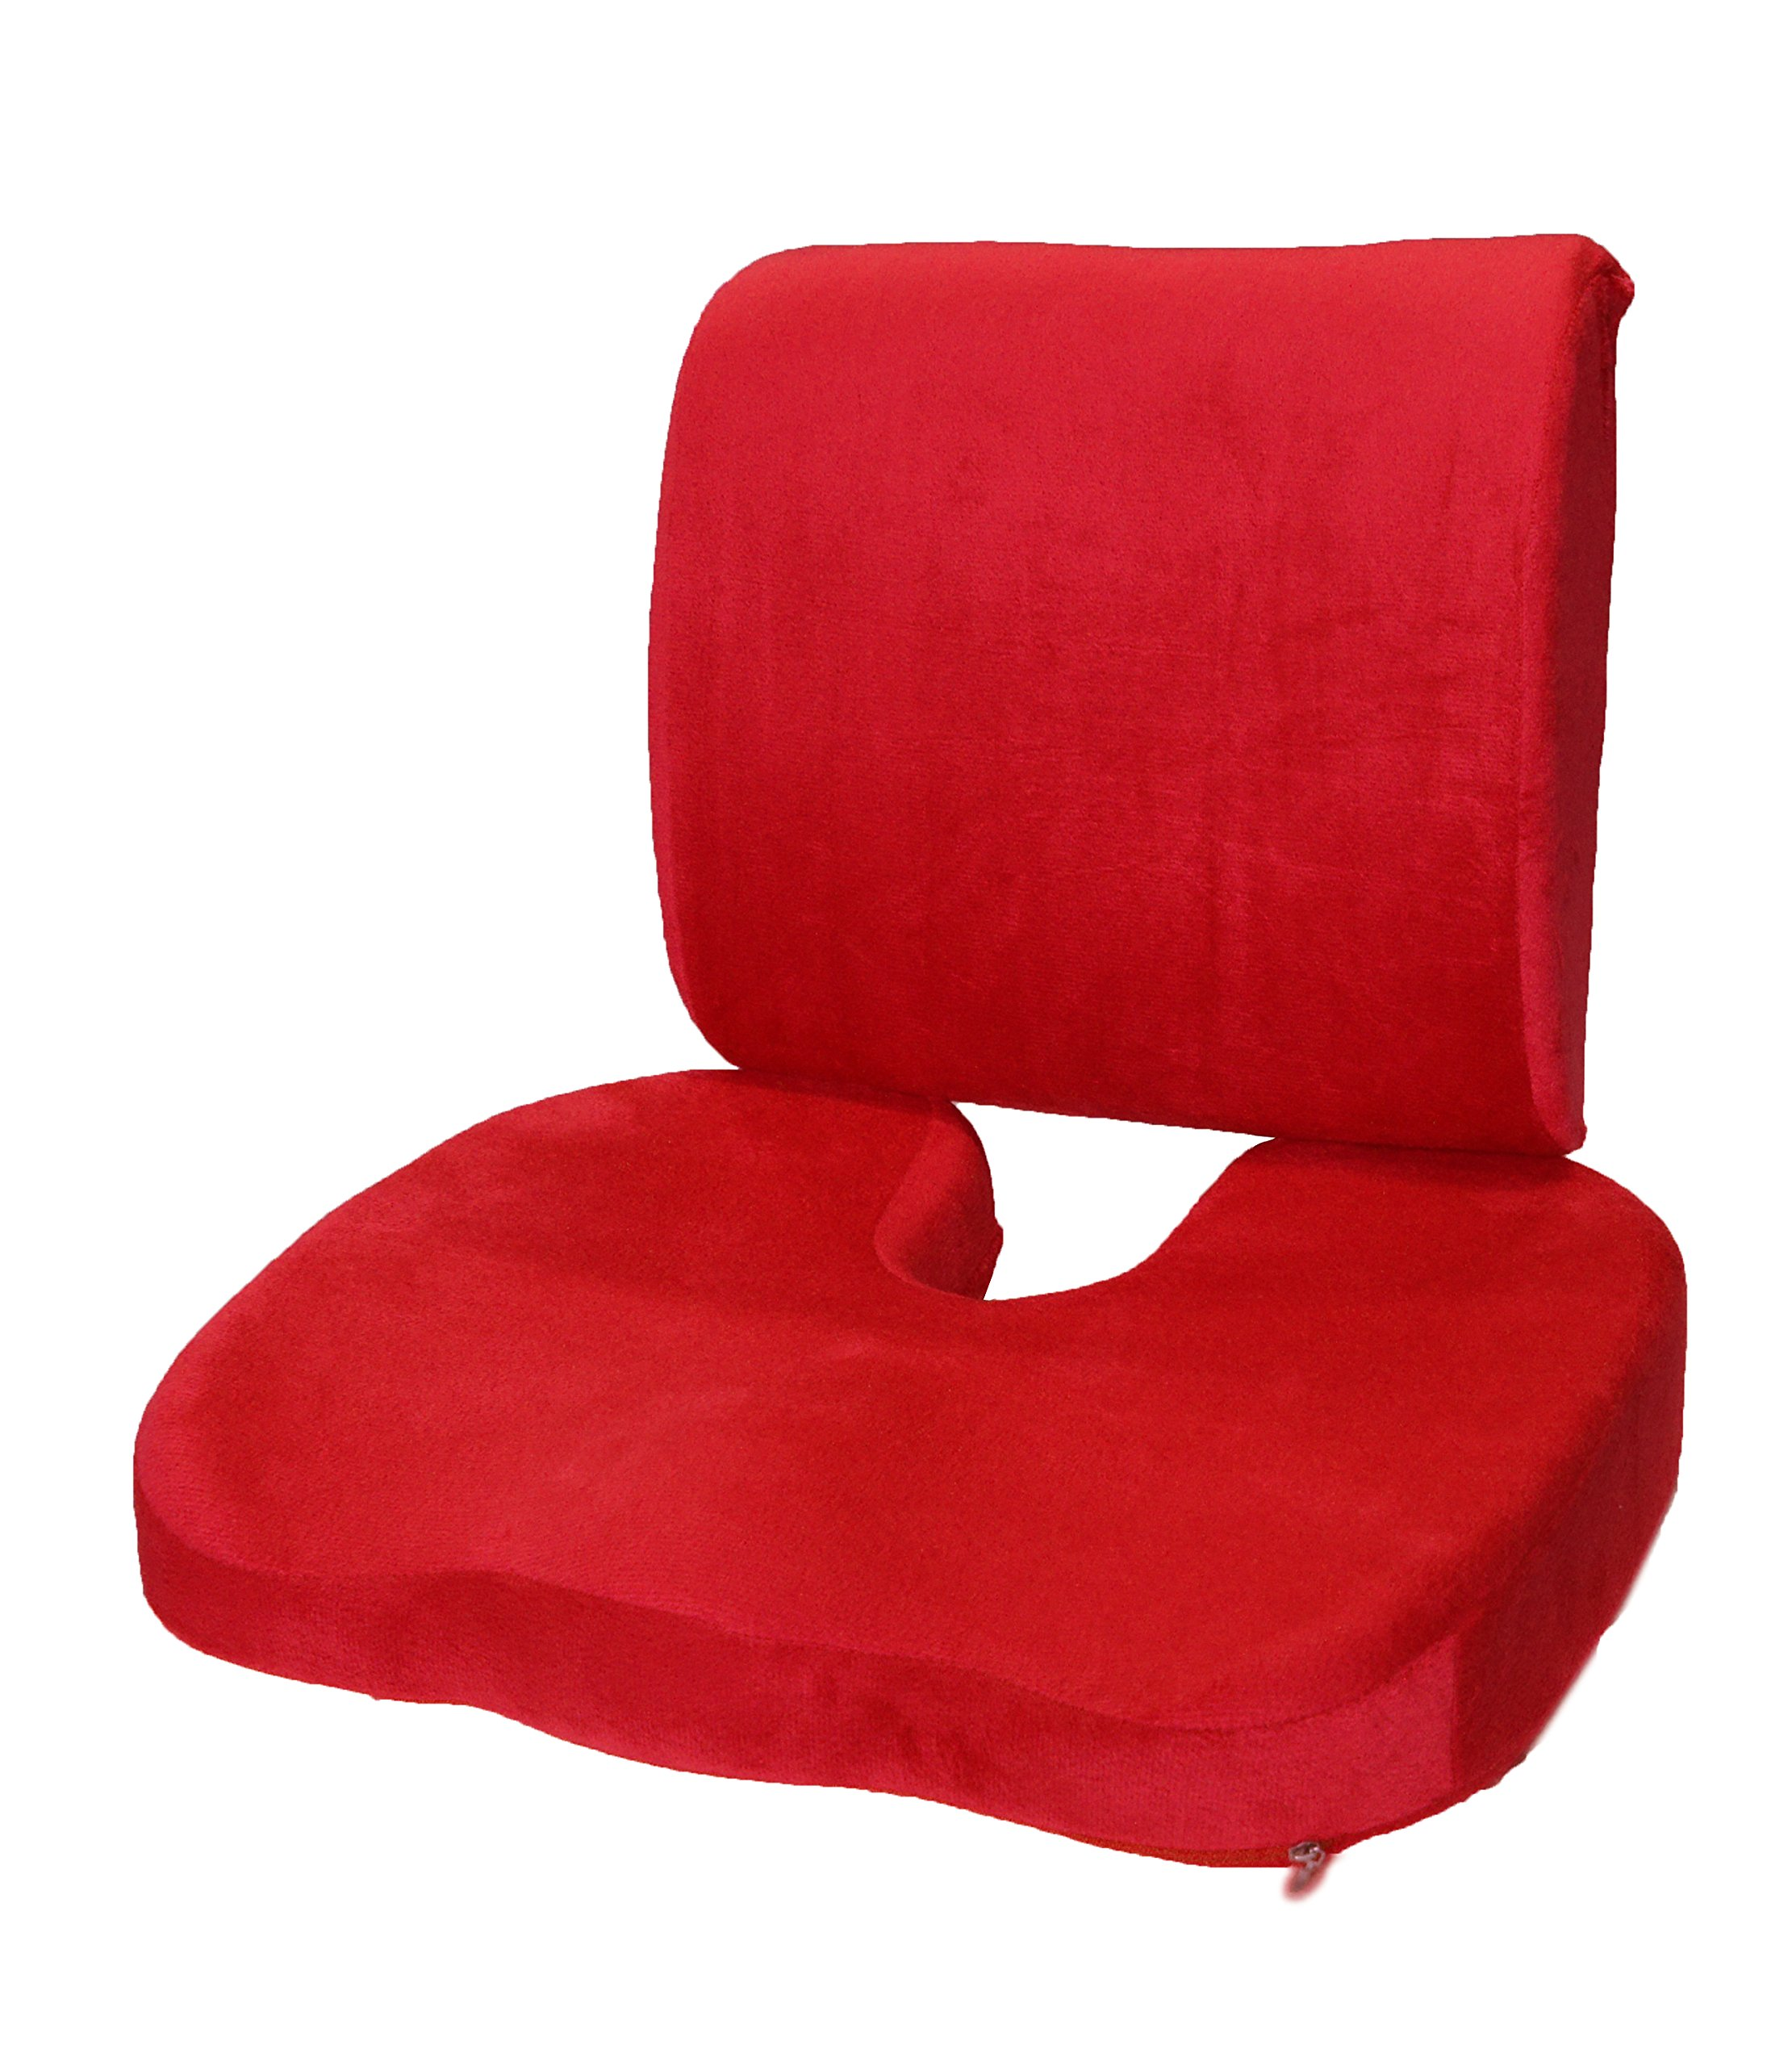 BookishBunny 2pc Memory Foam Seat Chair Waist Lumbar Back Support Cushion Pillow Car Office Home (Red)